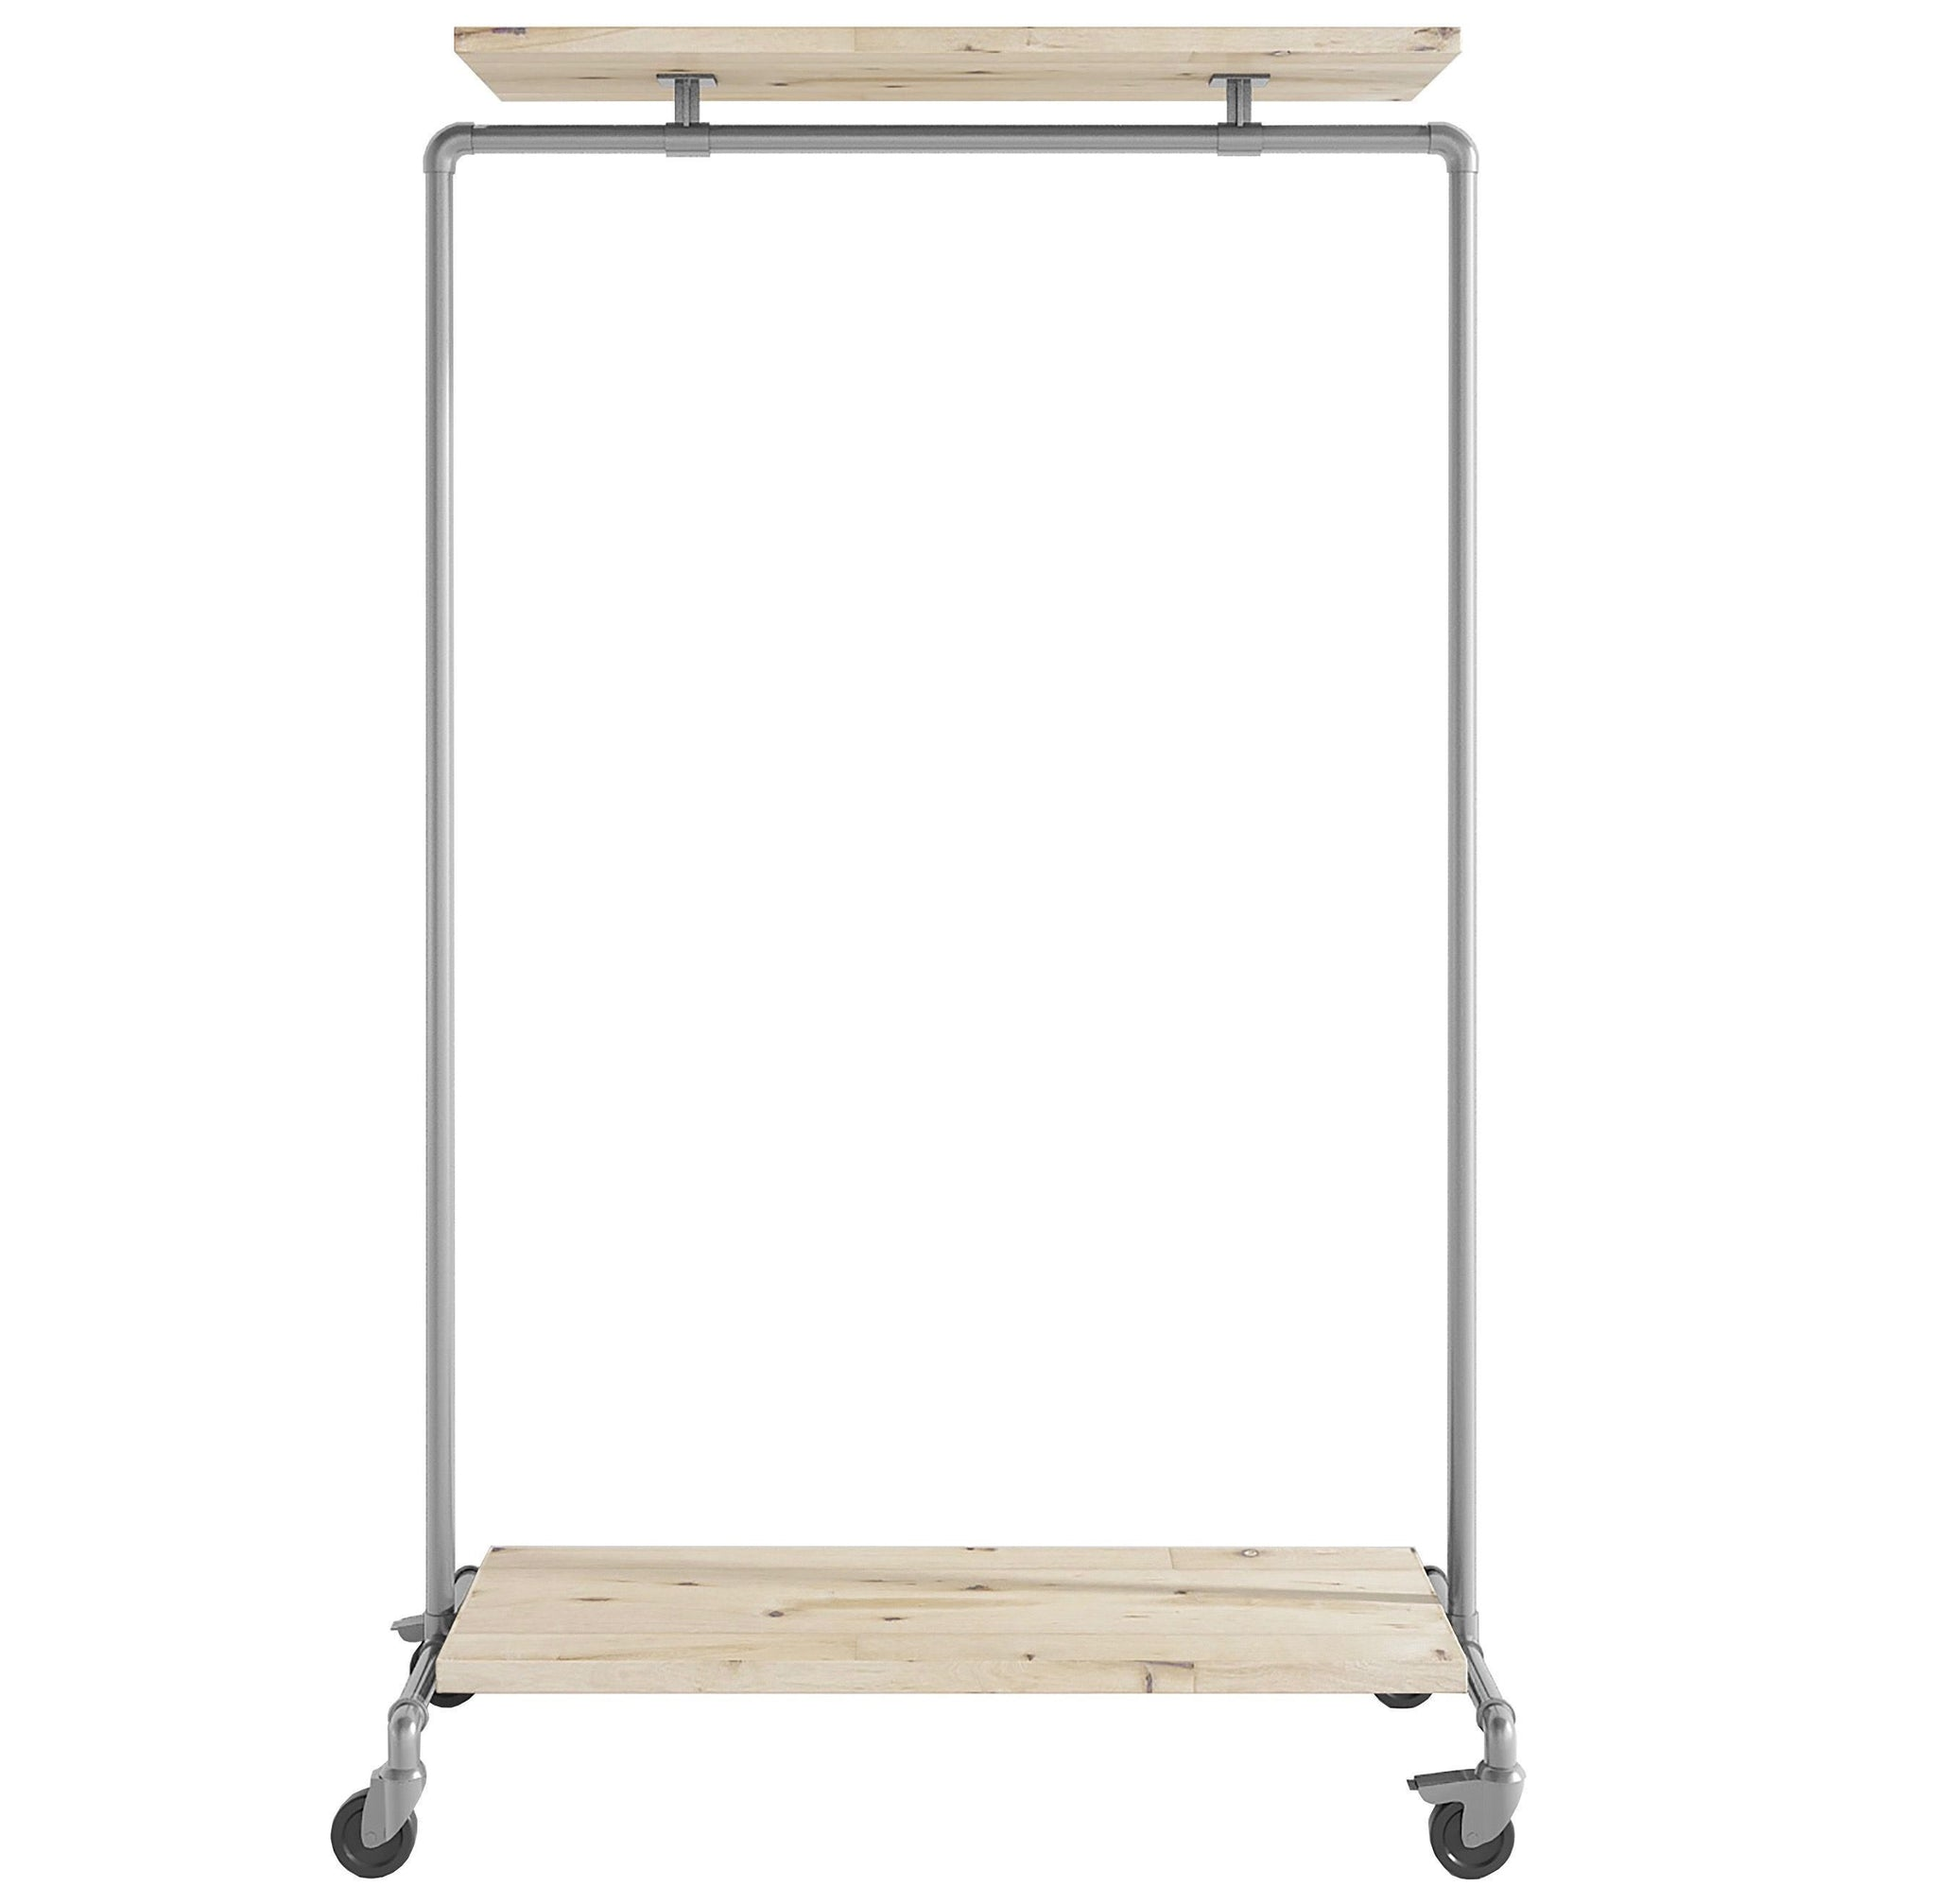 Ziito Clothes Rail C1 / 100 cm / Med Wood Double Shelf Tøjstativ